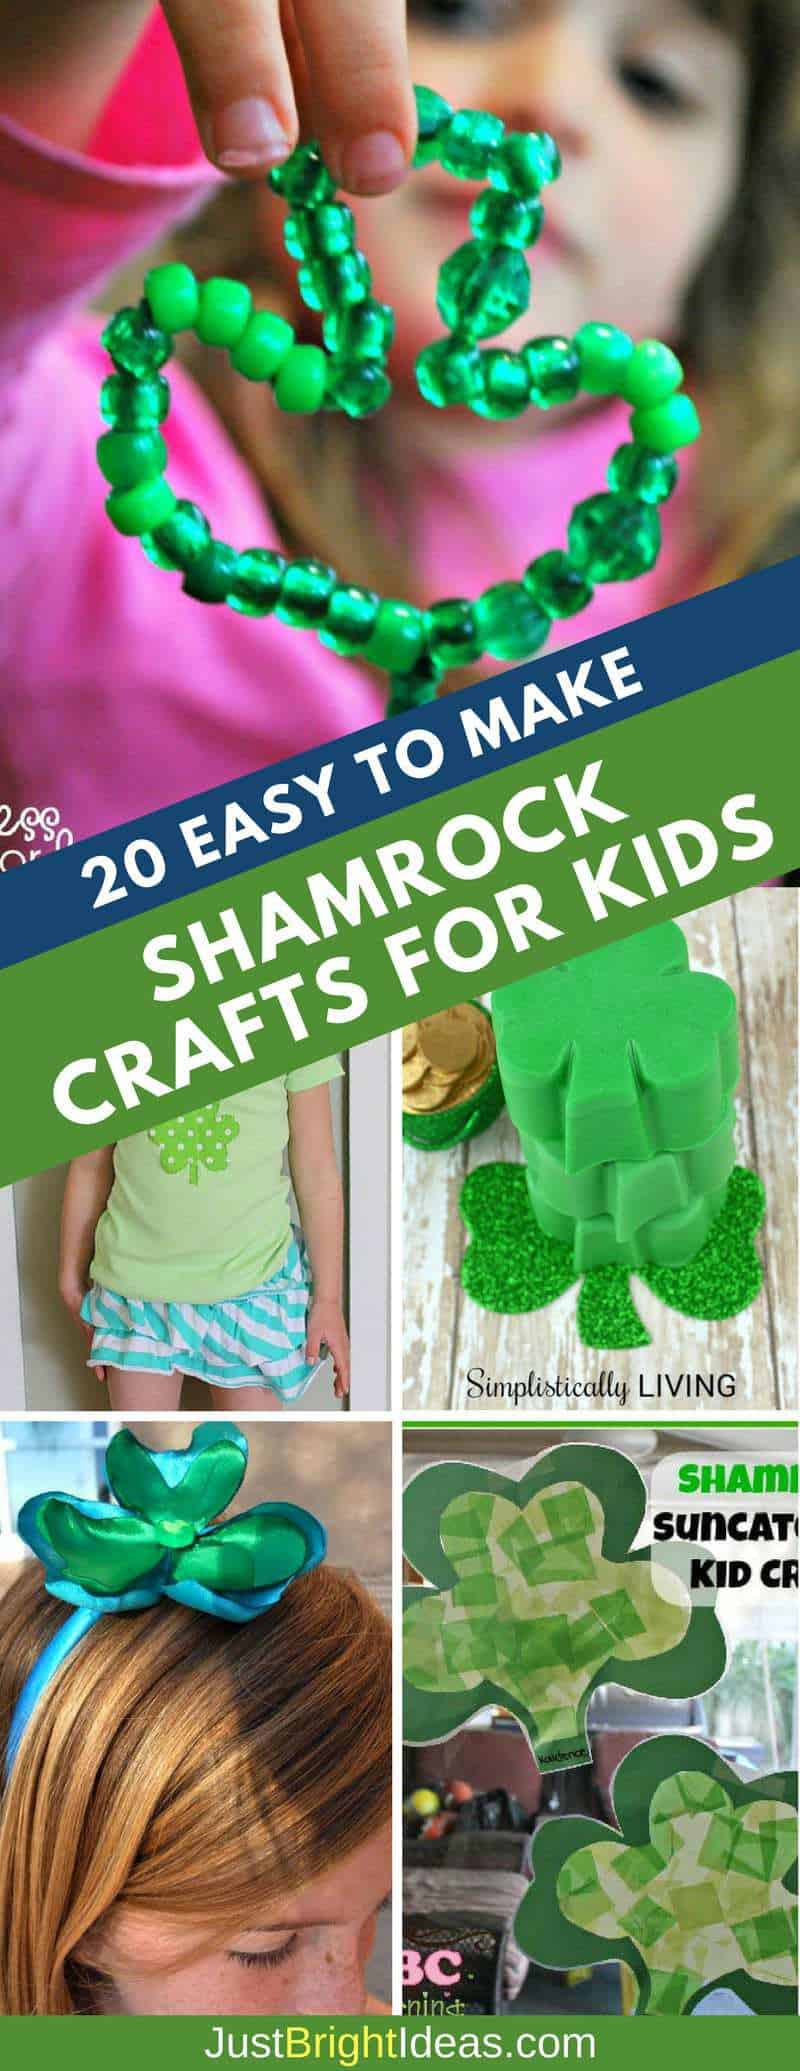 Easy to Make Shamrock Crafts for Kids Pinterest